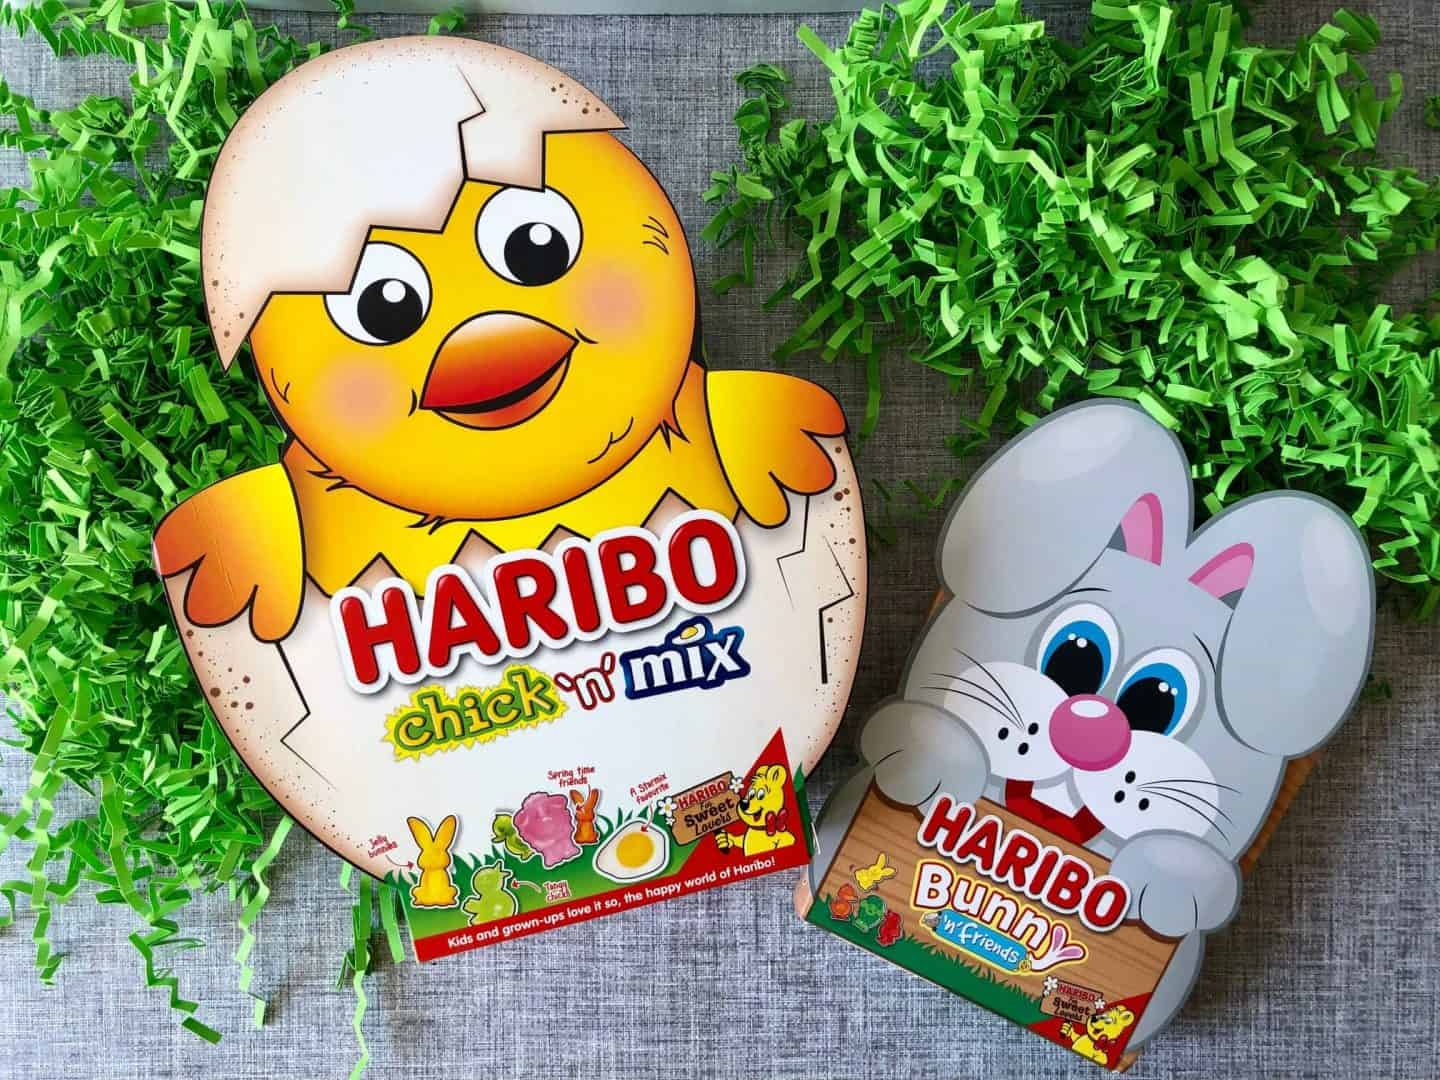 Haribo - Chick 'n' Mix and Bunny 'n' Friends limited edition Easter packs